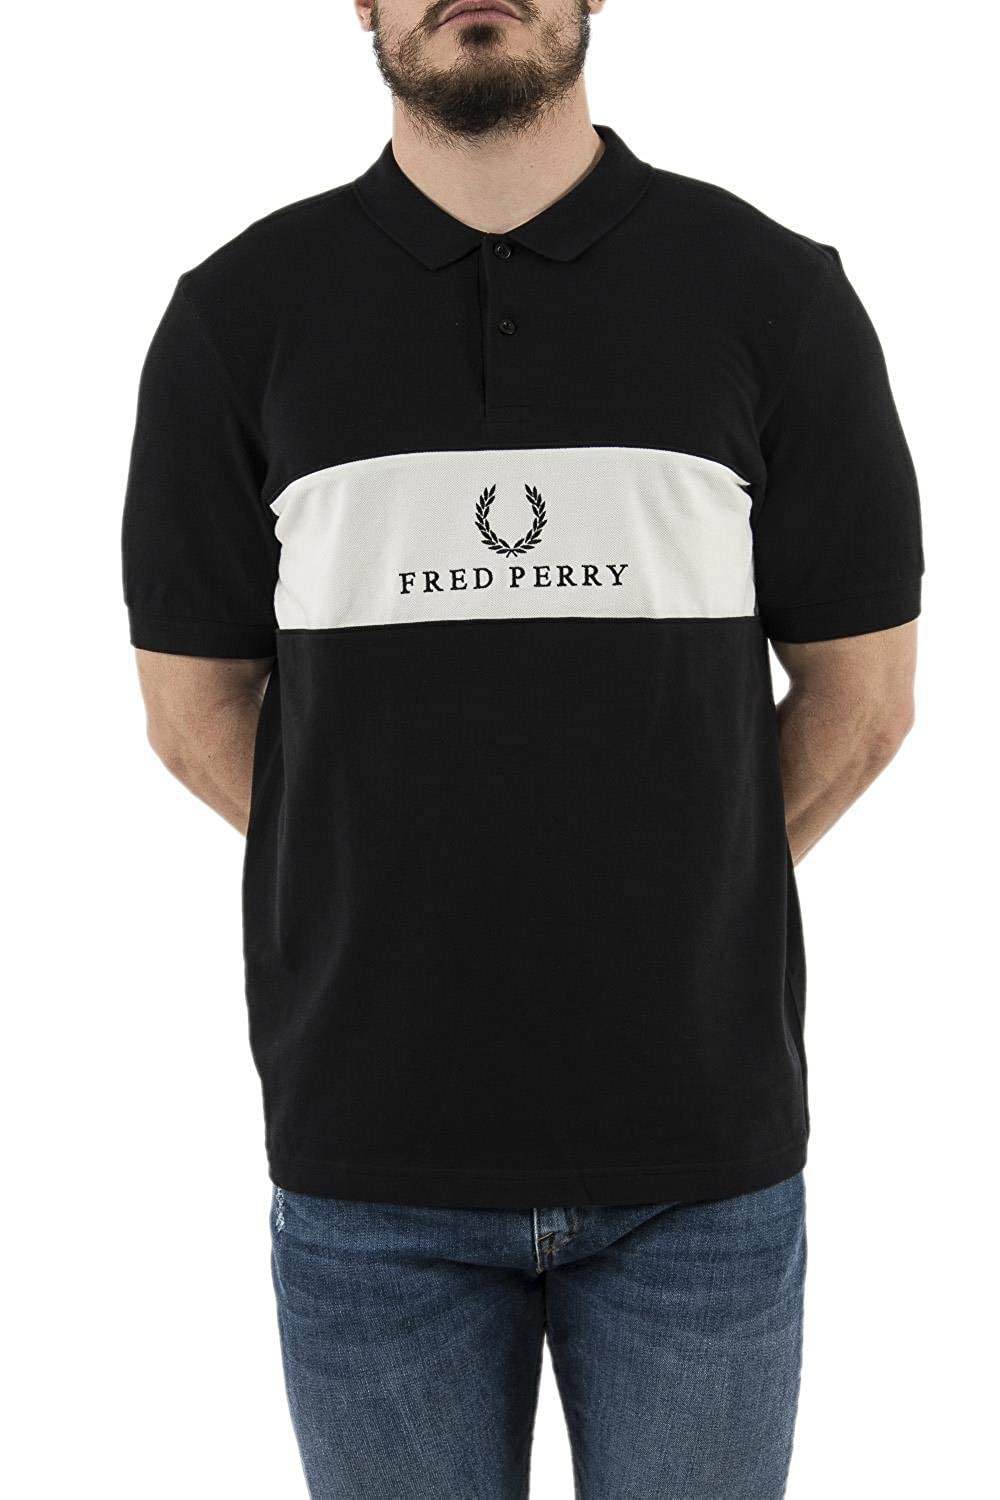 Fred Perry Panel Piped Pique Shirt, Polo: Amazon.es: Ropa y accesorios